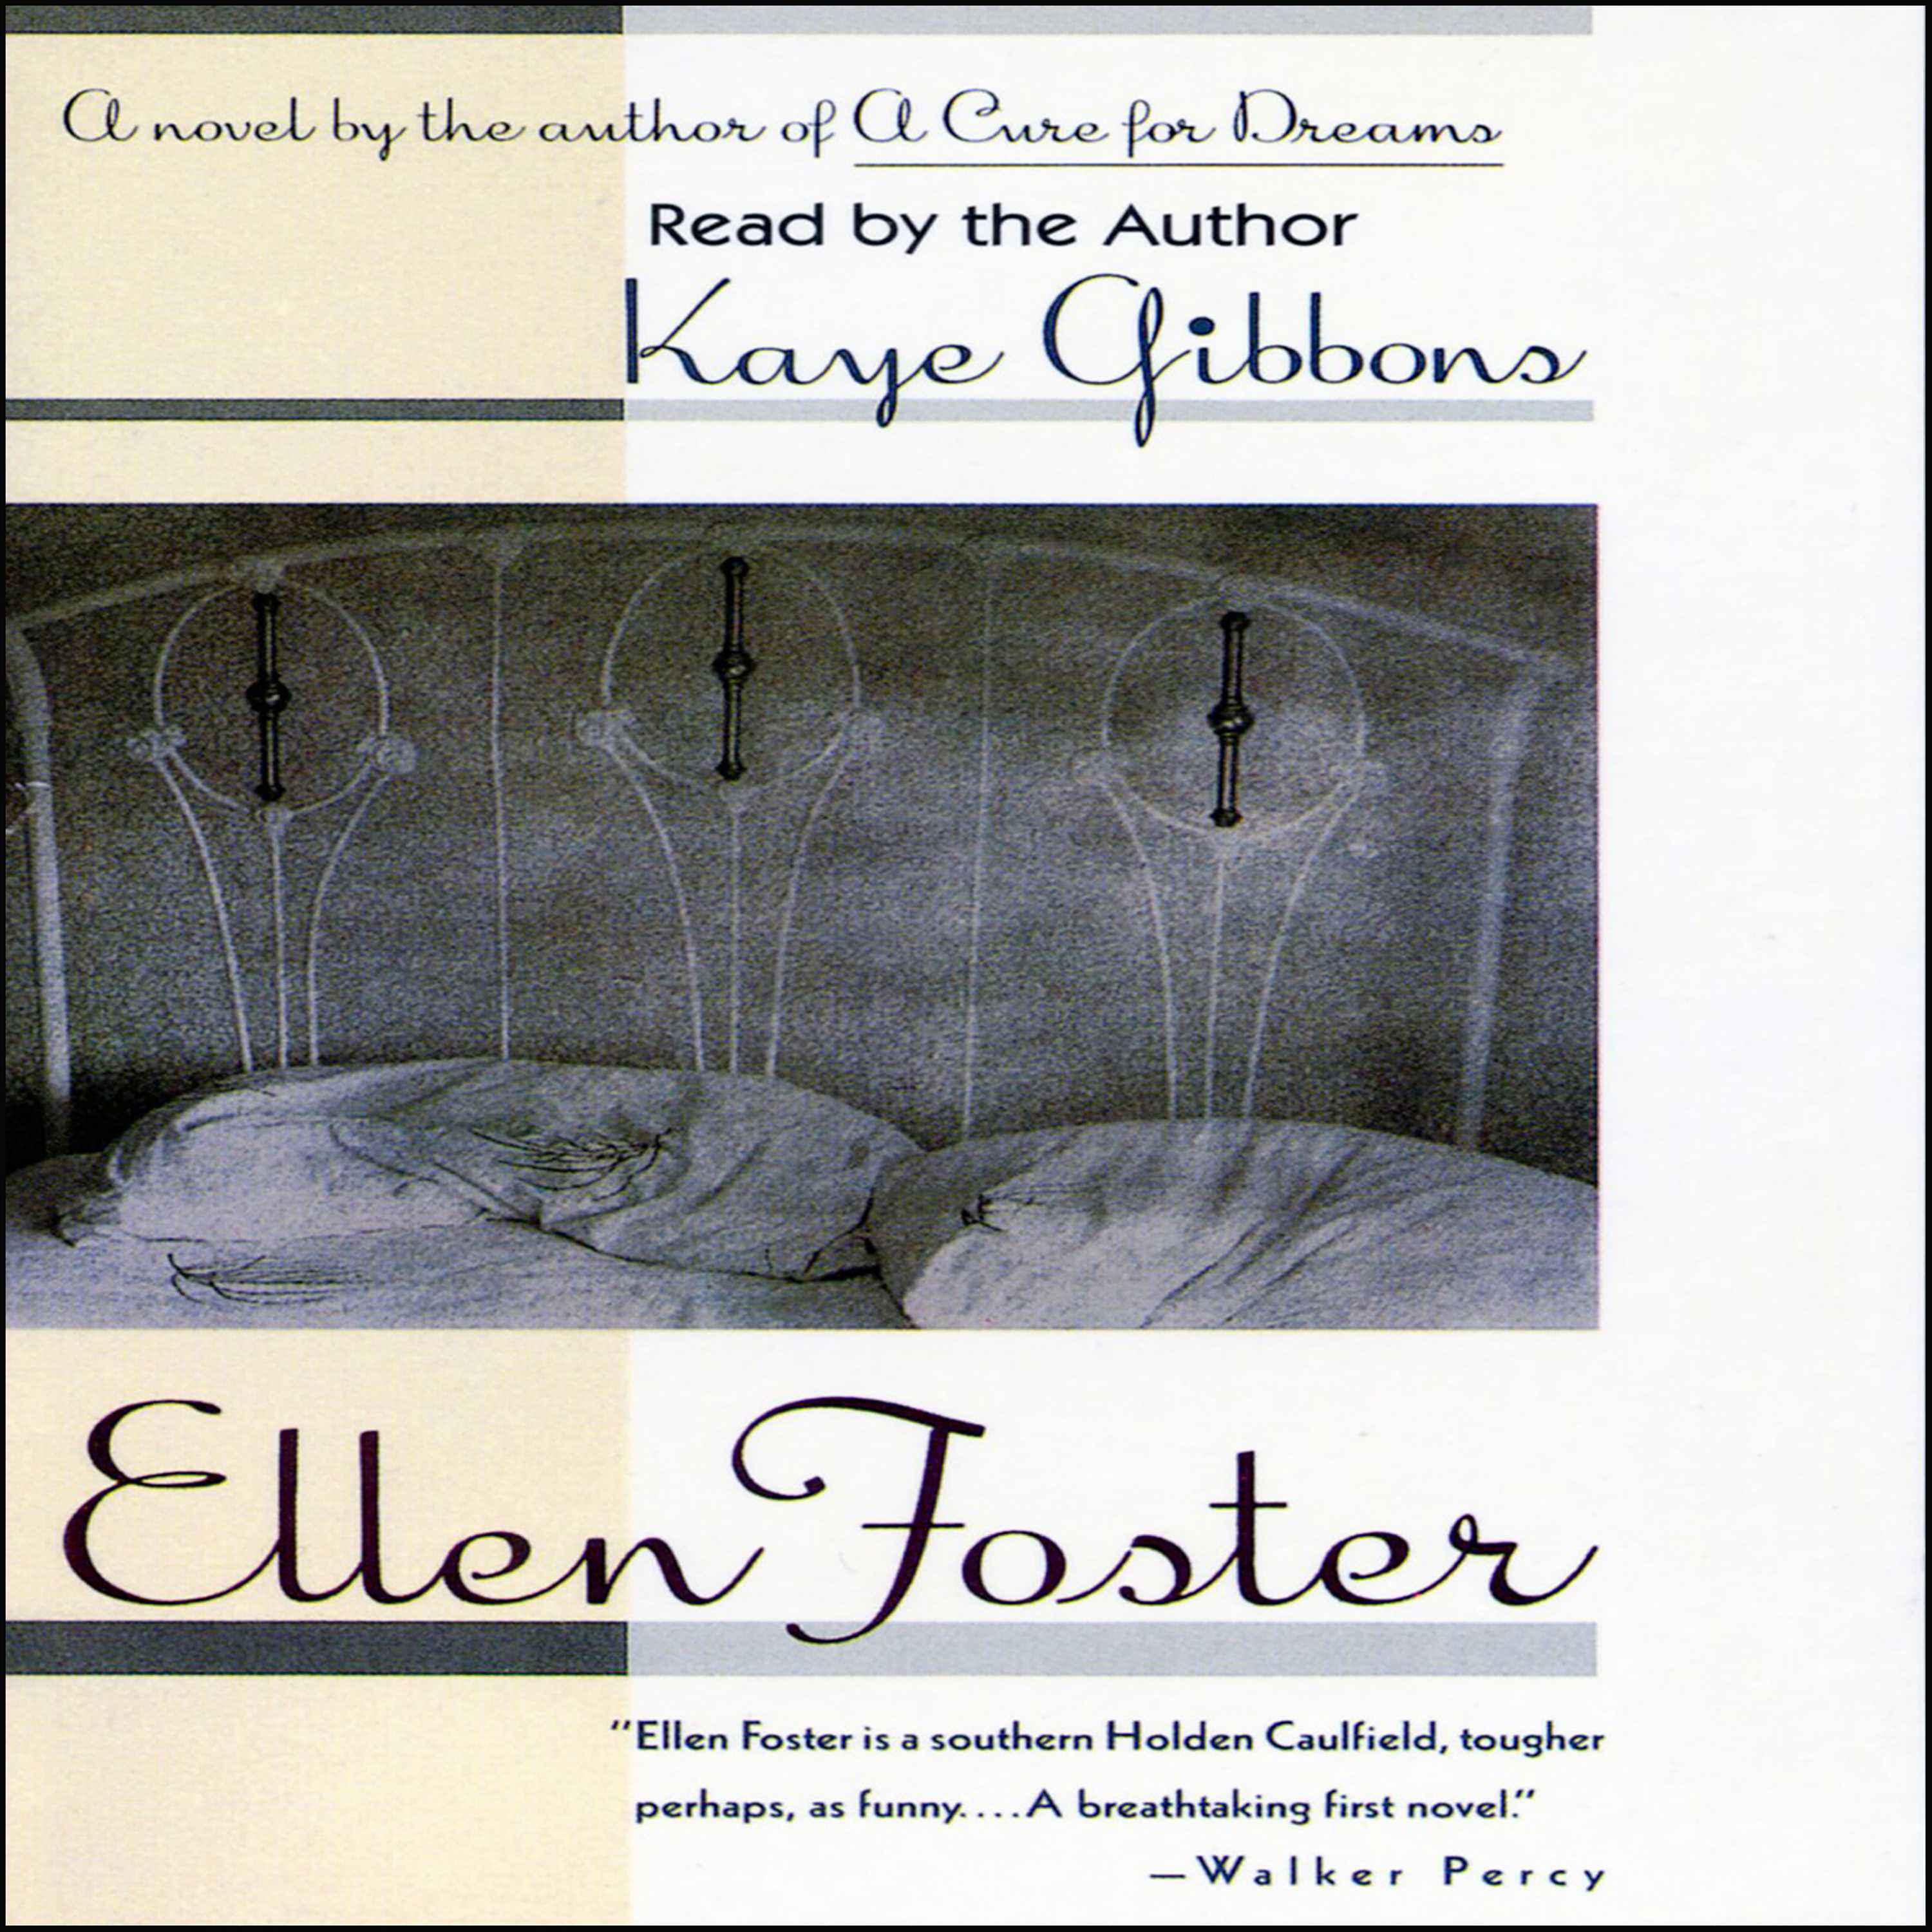 an analysis of ellen foster by kaye gibbons Two questions: 1) how does ellen act at her aunt betsy's house in ch7 and what insight does she gain from this experience 2) how does she act at julia and roy&#39s house in ch 8 and what insight does she gain from this experience.